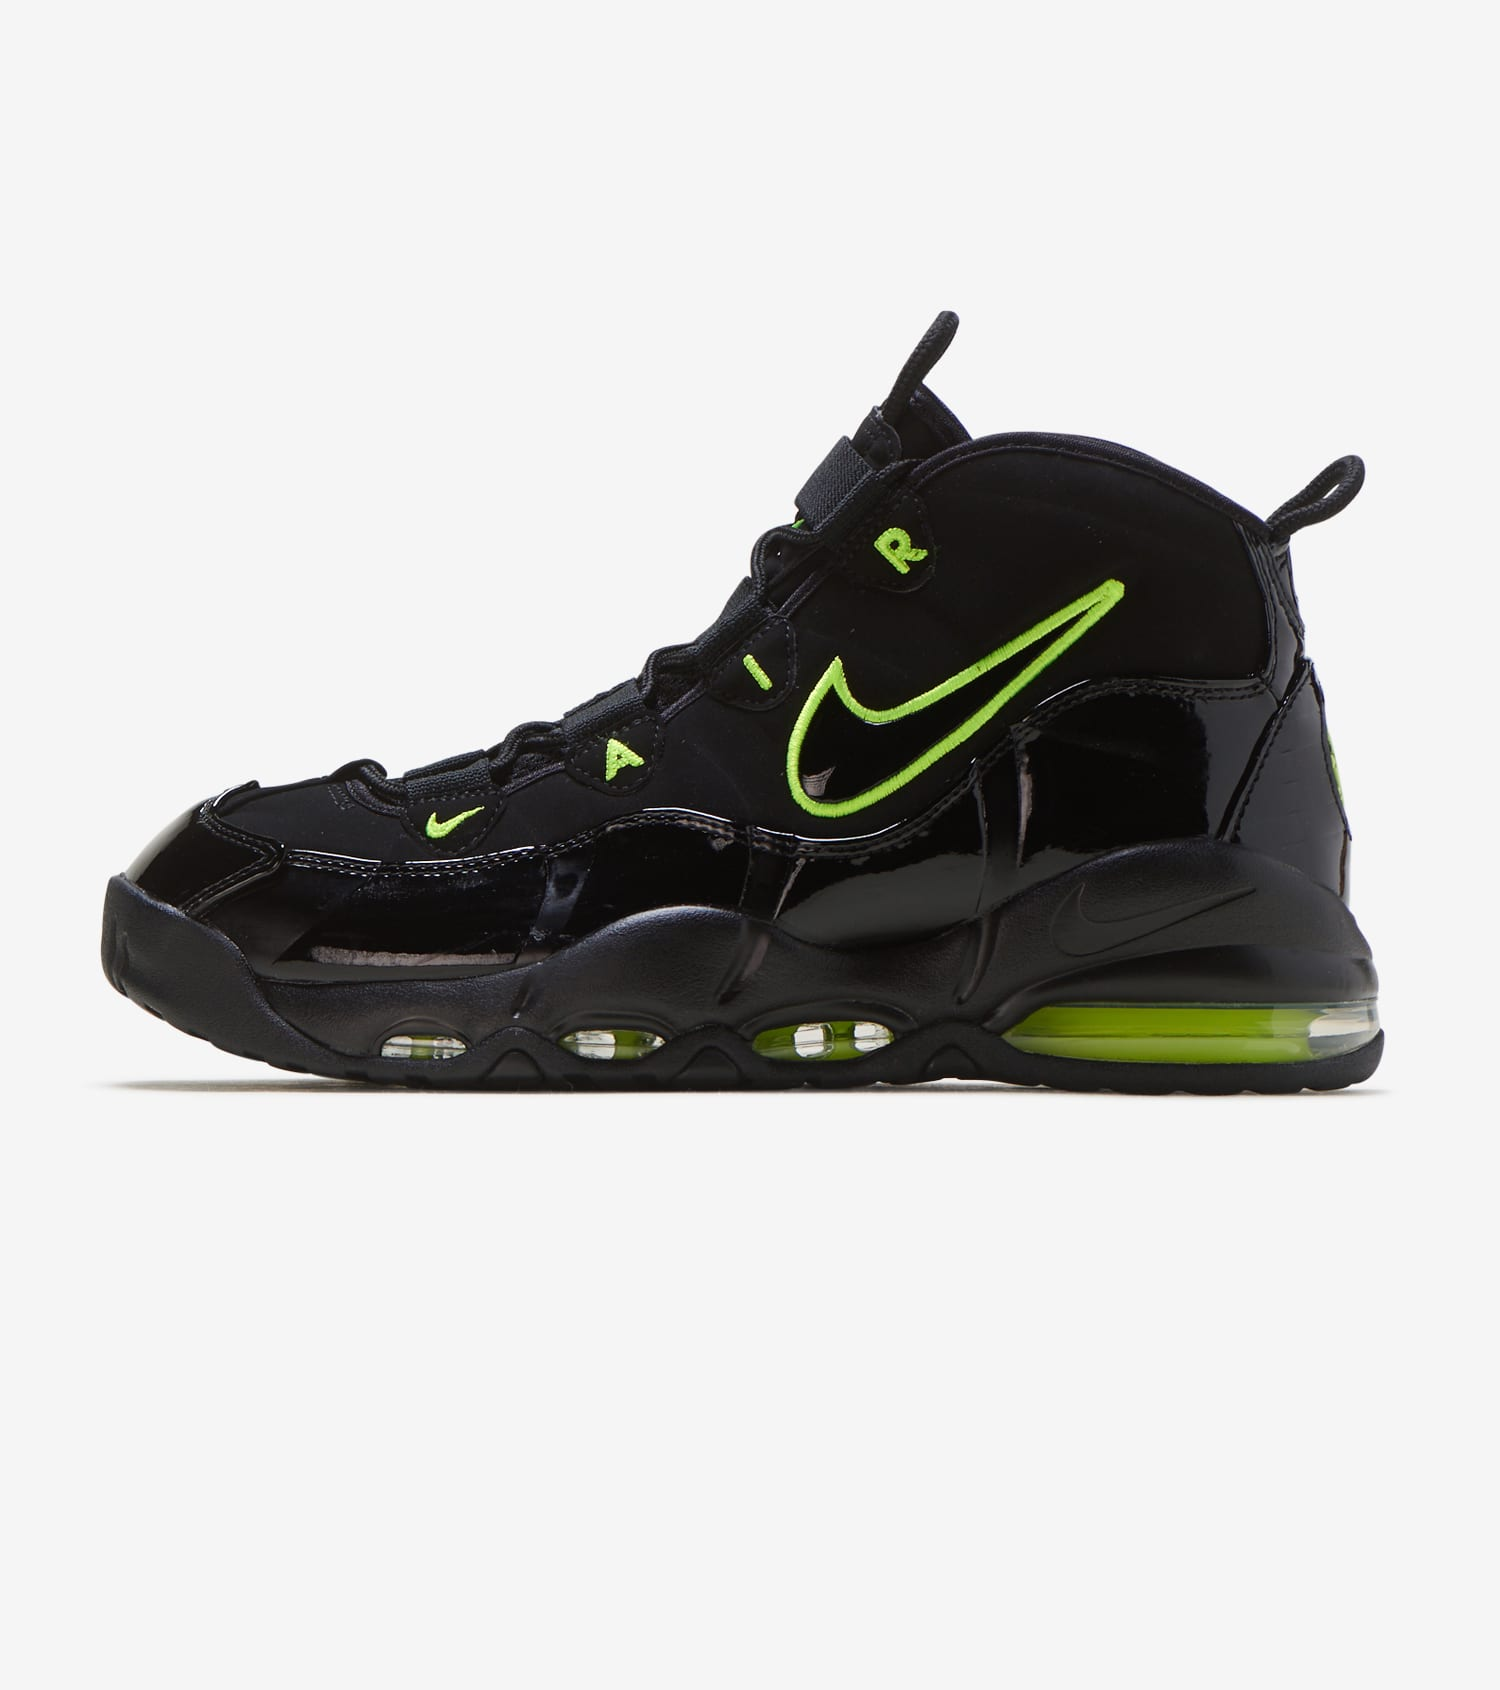 Details about Men's Nike Air Max Uptempo Basketball Shoes